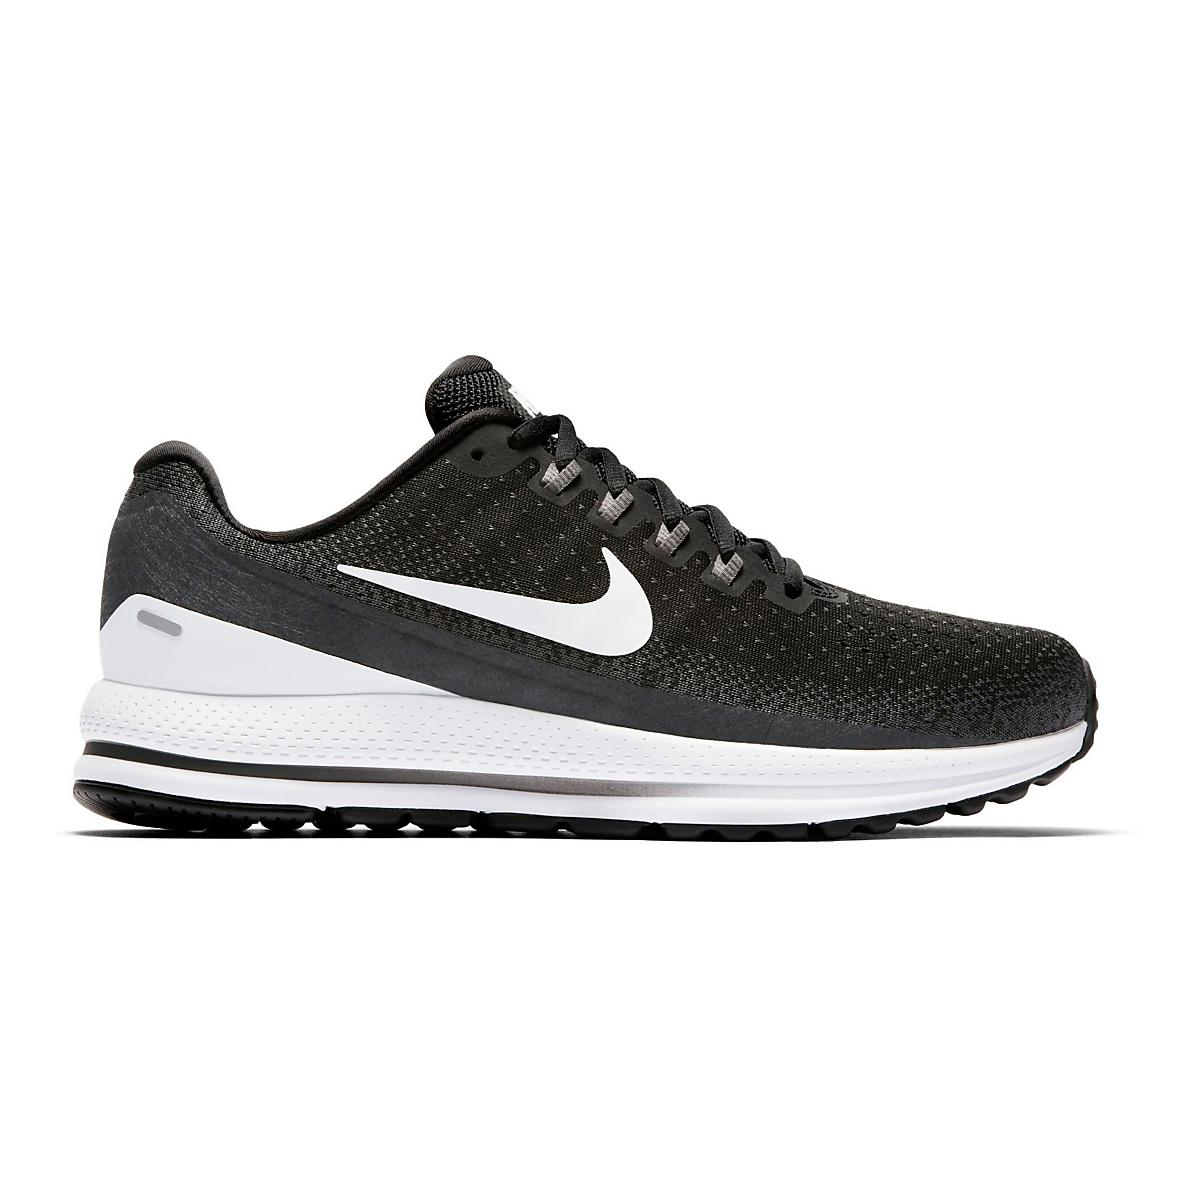 1b2180fab99c Nike Air Zoom Vomero 13 for Men from Road Runner Sports